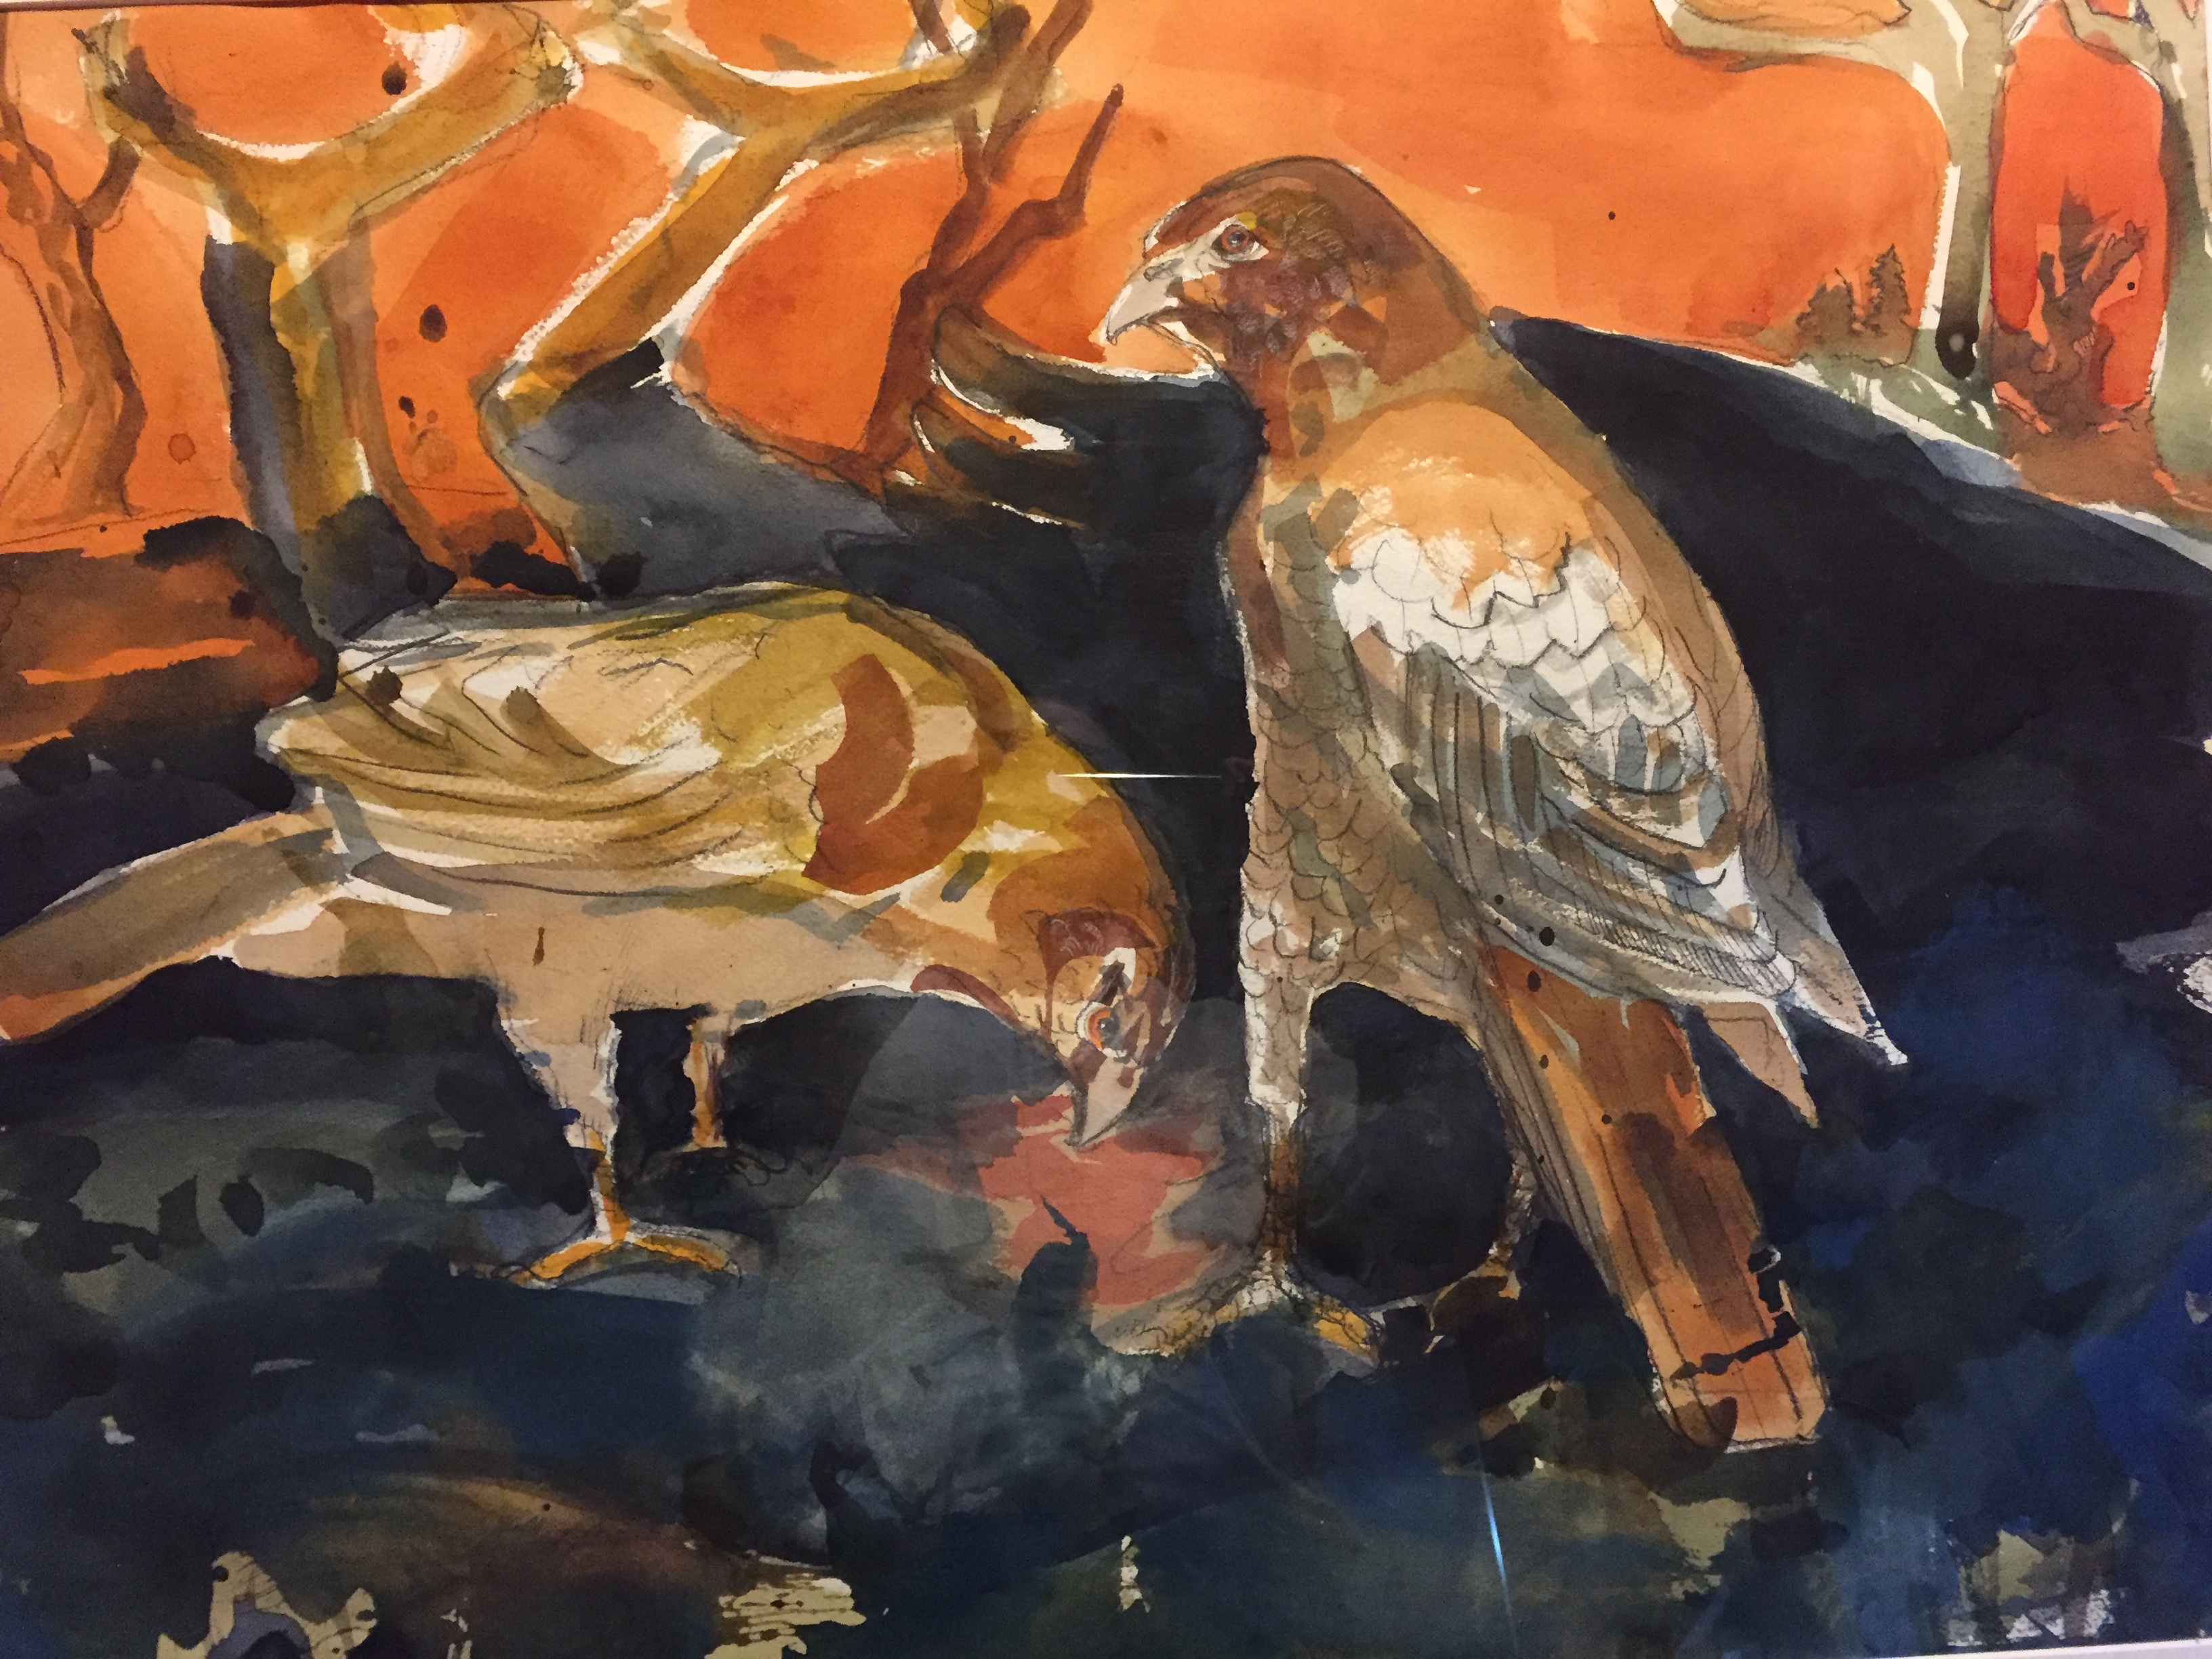 Red Tails-Garber, watercolor $1600